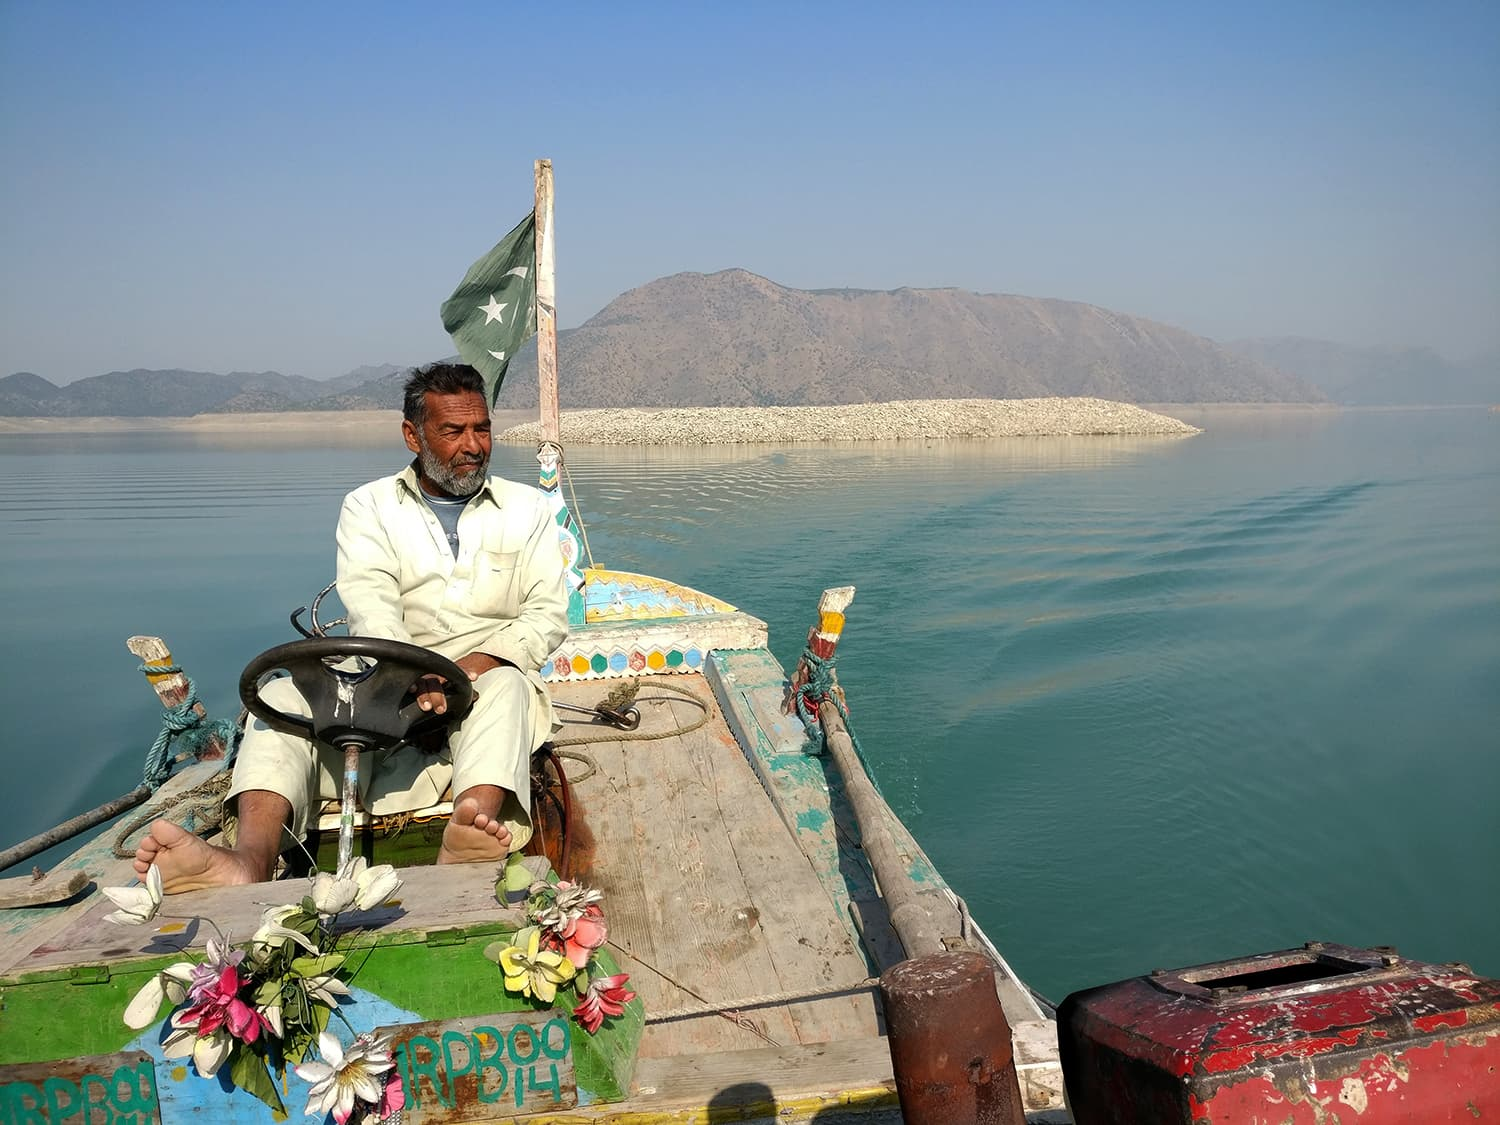 The site of the former fort of Bharukot stands out in the middle of the Tarbela Lake as a small island.